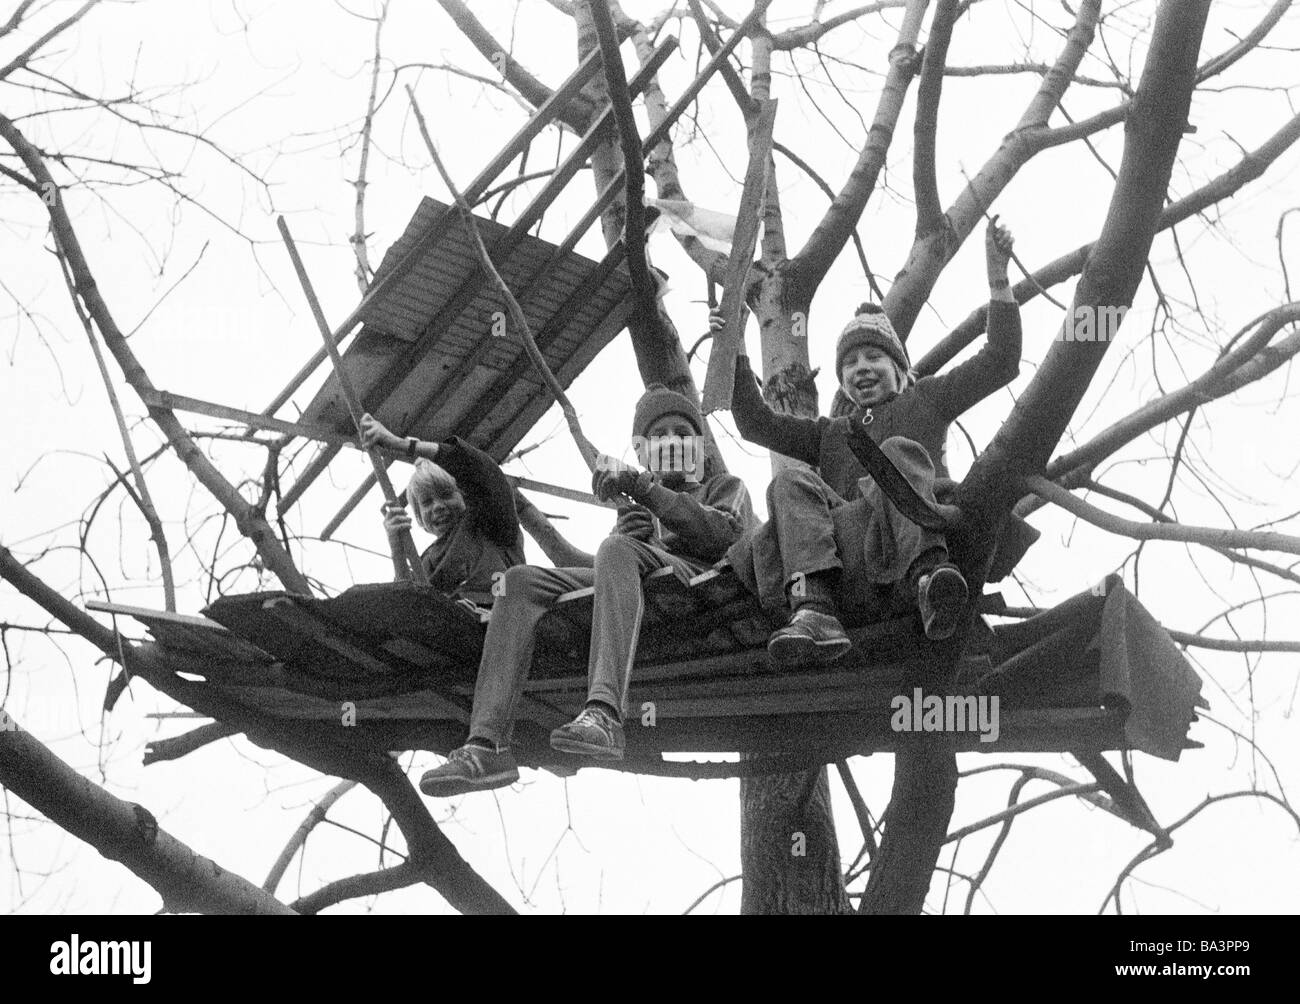 Seventies, black and white photo, people, children, three boys sitting in a tree house, childrens playground, aged - Stock Image